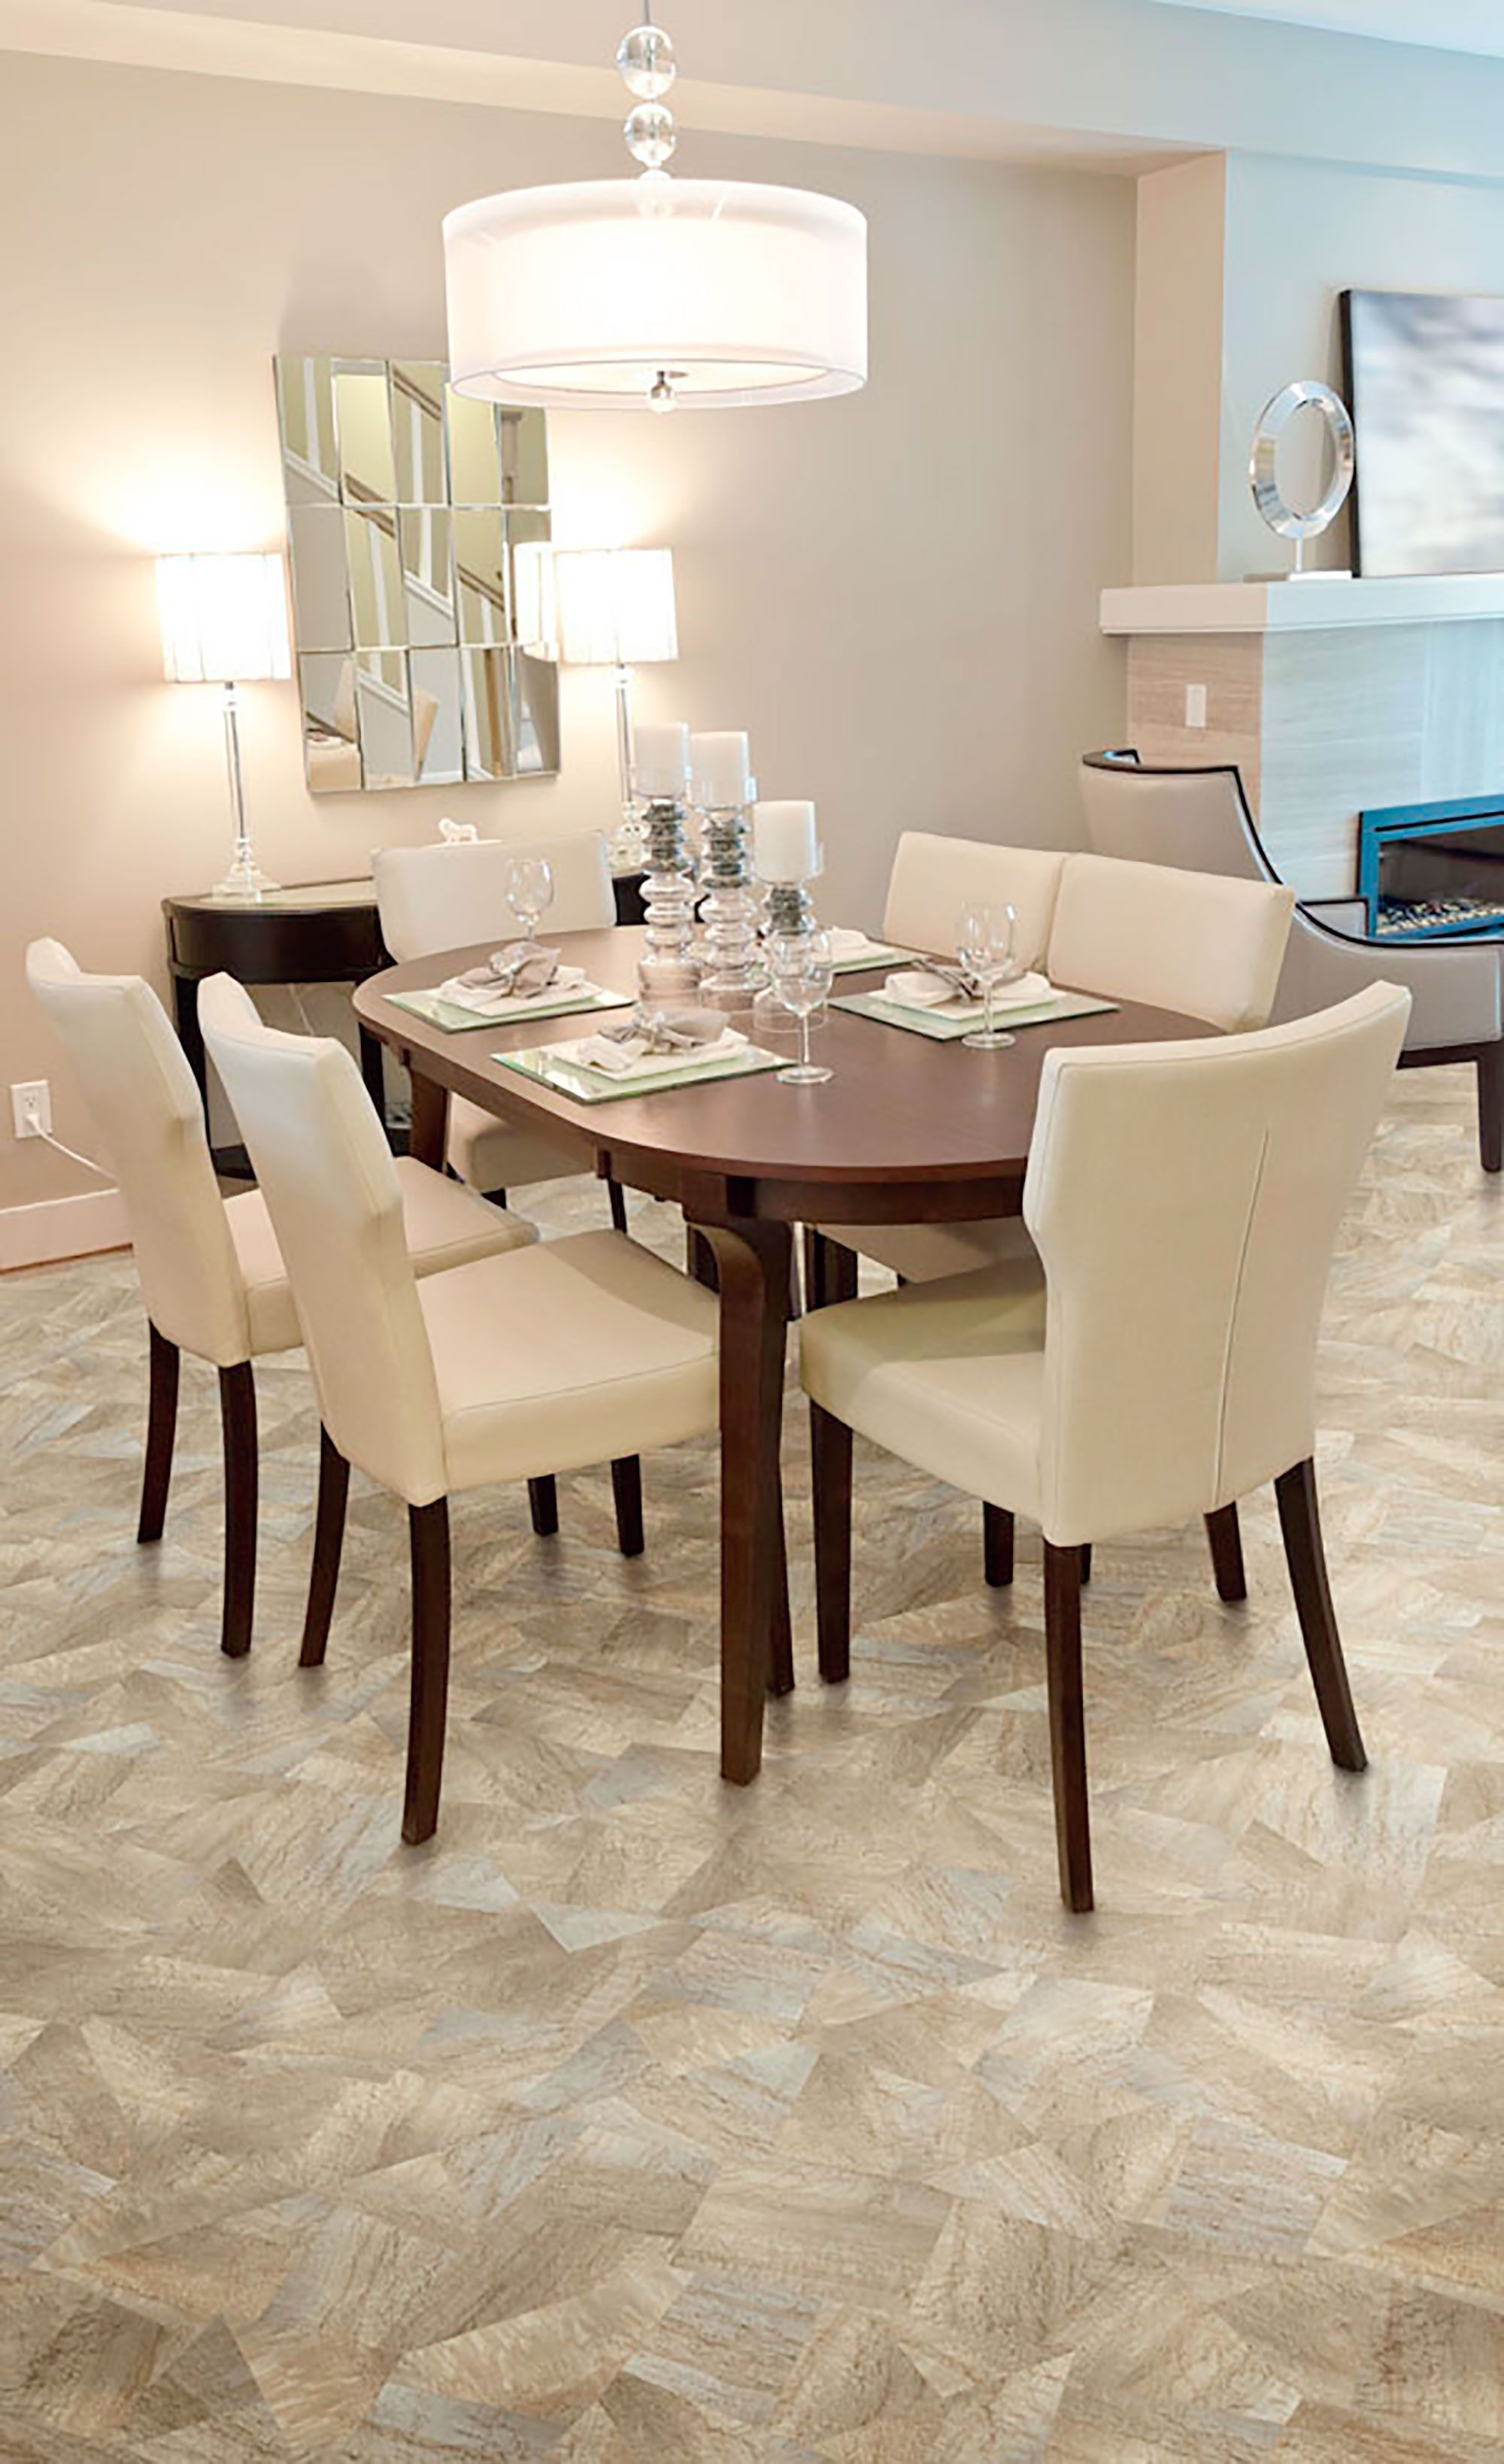 flooring - Dining Room Flooring Options